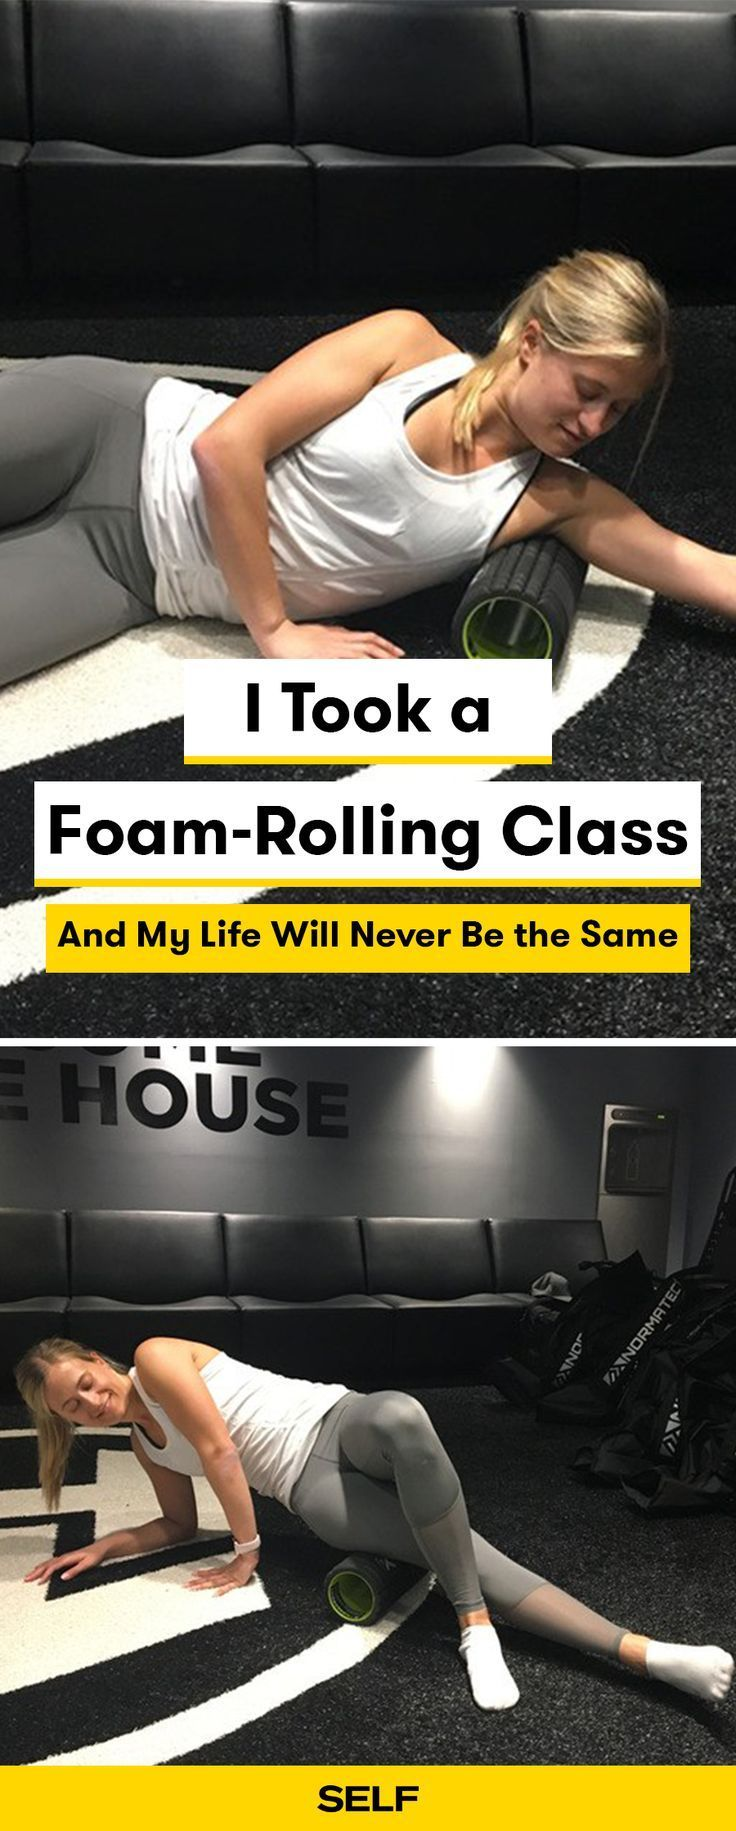 Foam-rolling feels good and has amazing benefits. I went to a physical therapist to show me the proper way to foam roll to prevent pain after hard workouts. Here's what I learned.